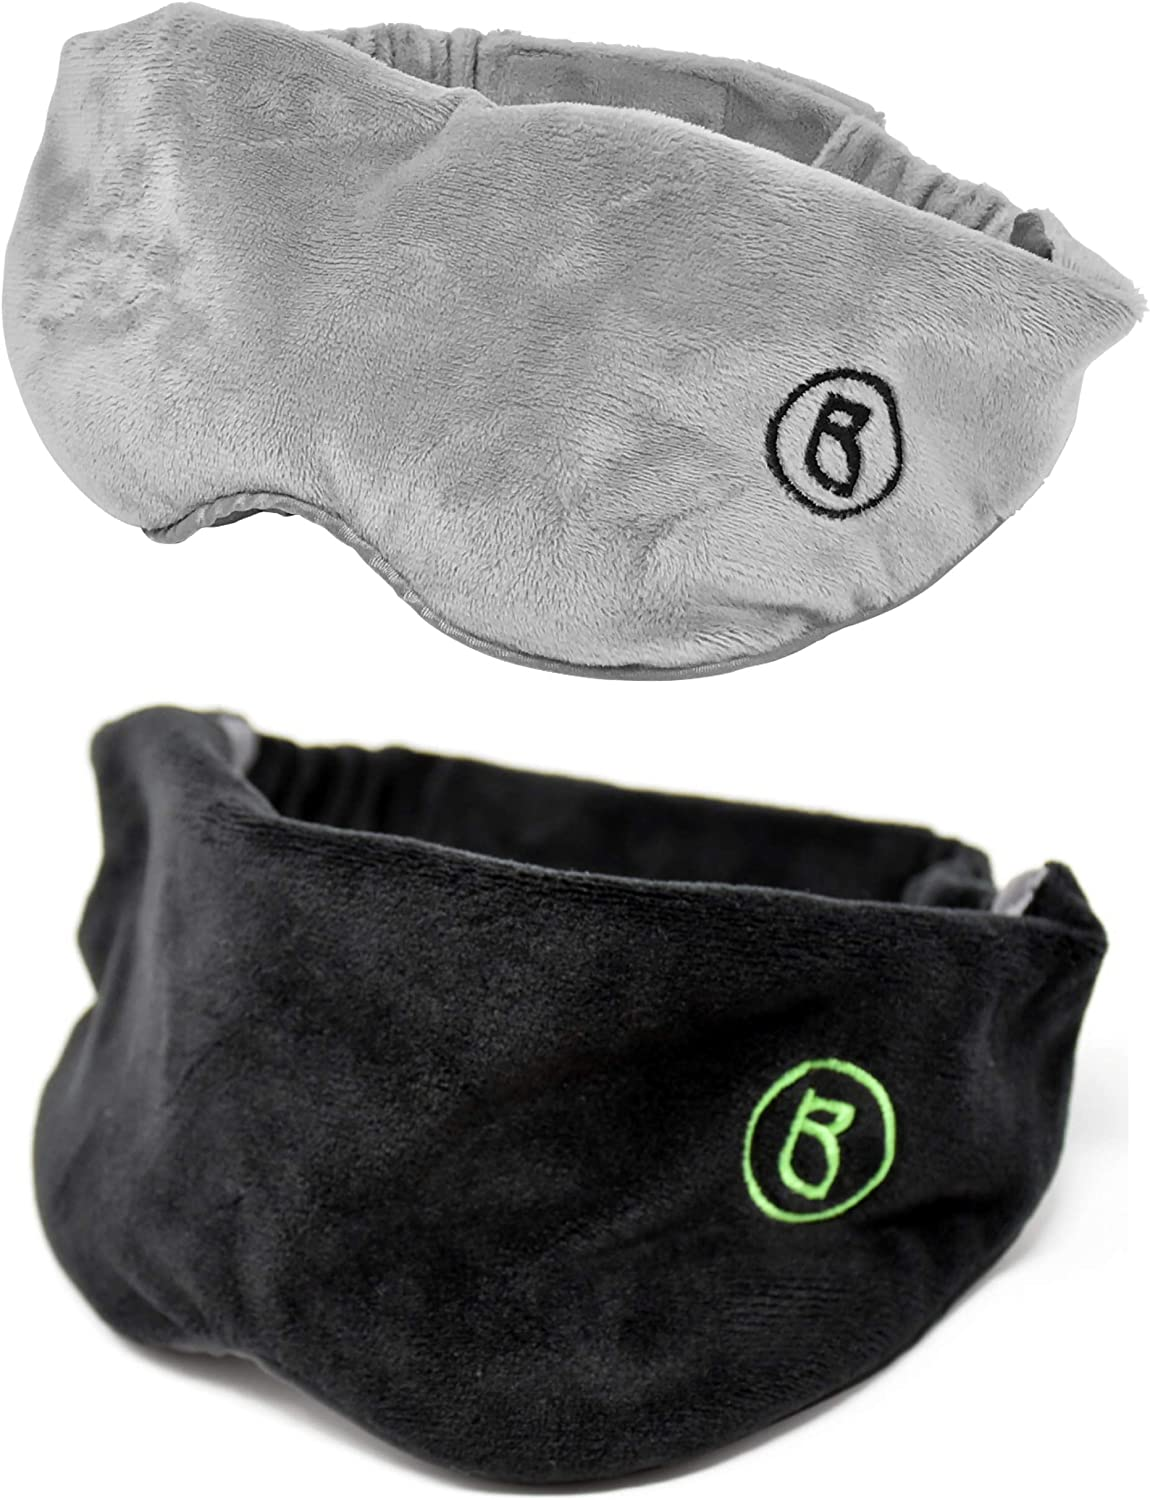 BARMY Large discharge sale Weighted Sleep New Shipping Free Shipping Mask 0.8lb 13oz Gray Black and Wei Bundle